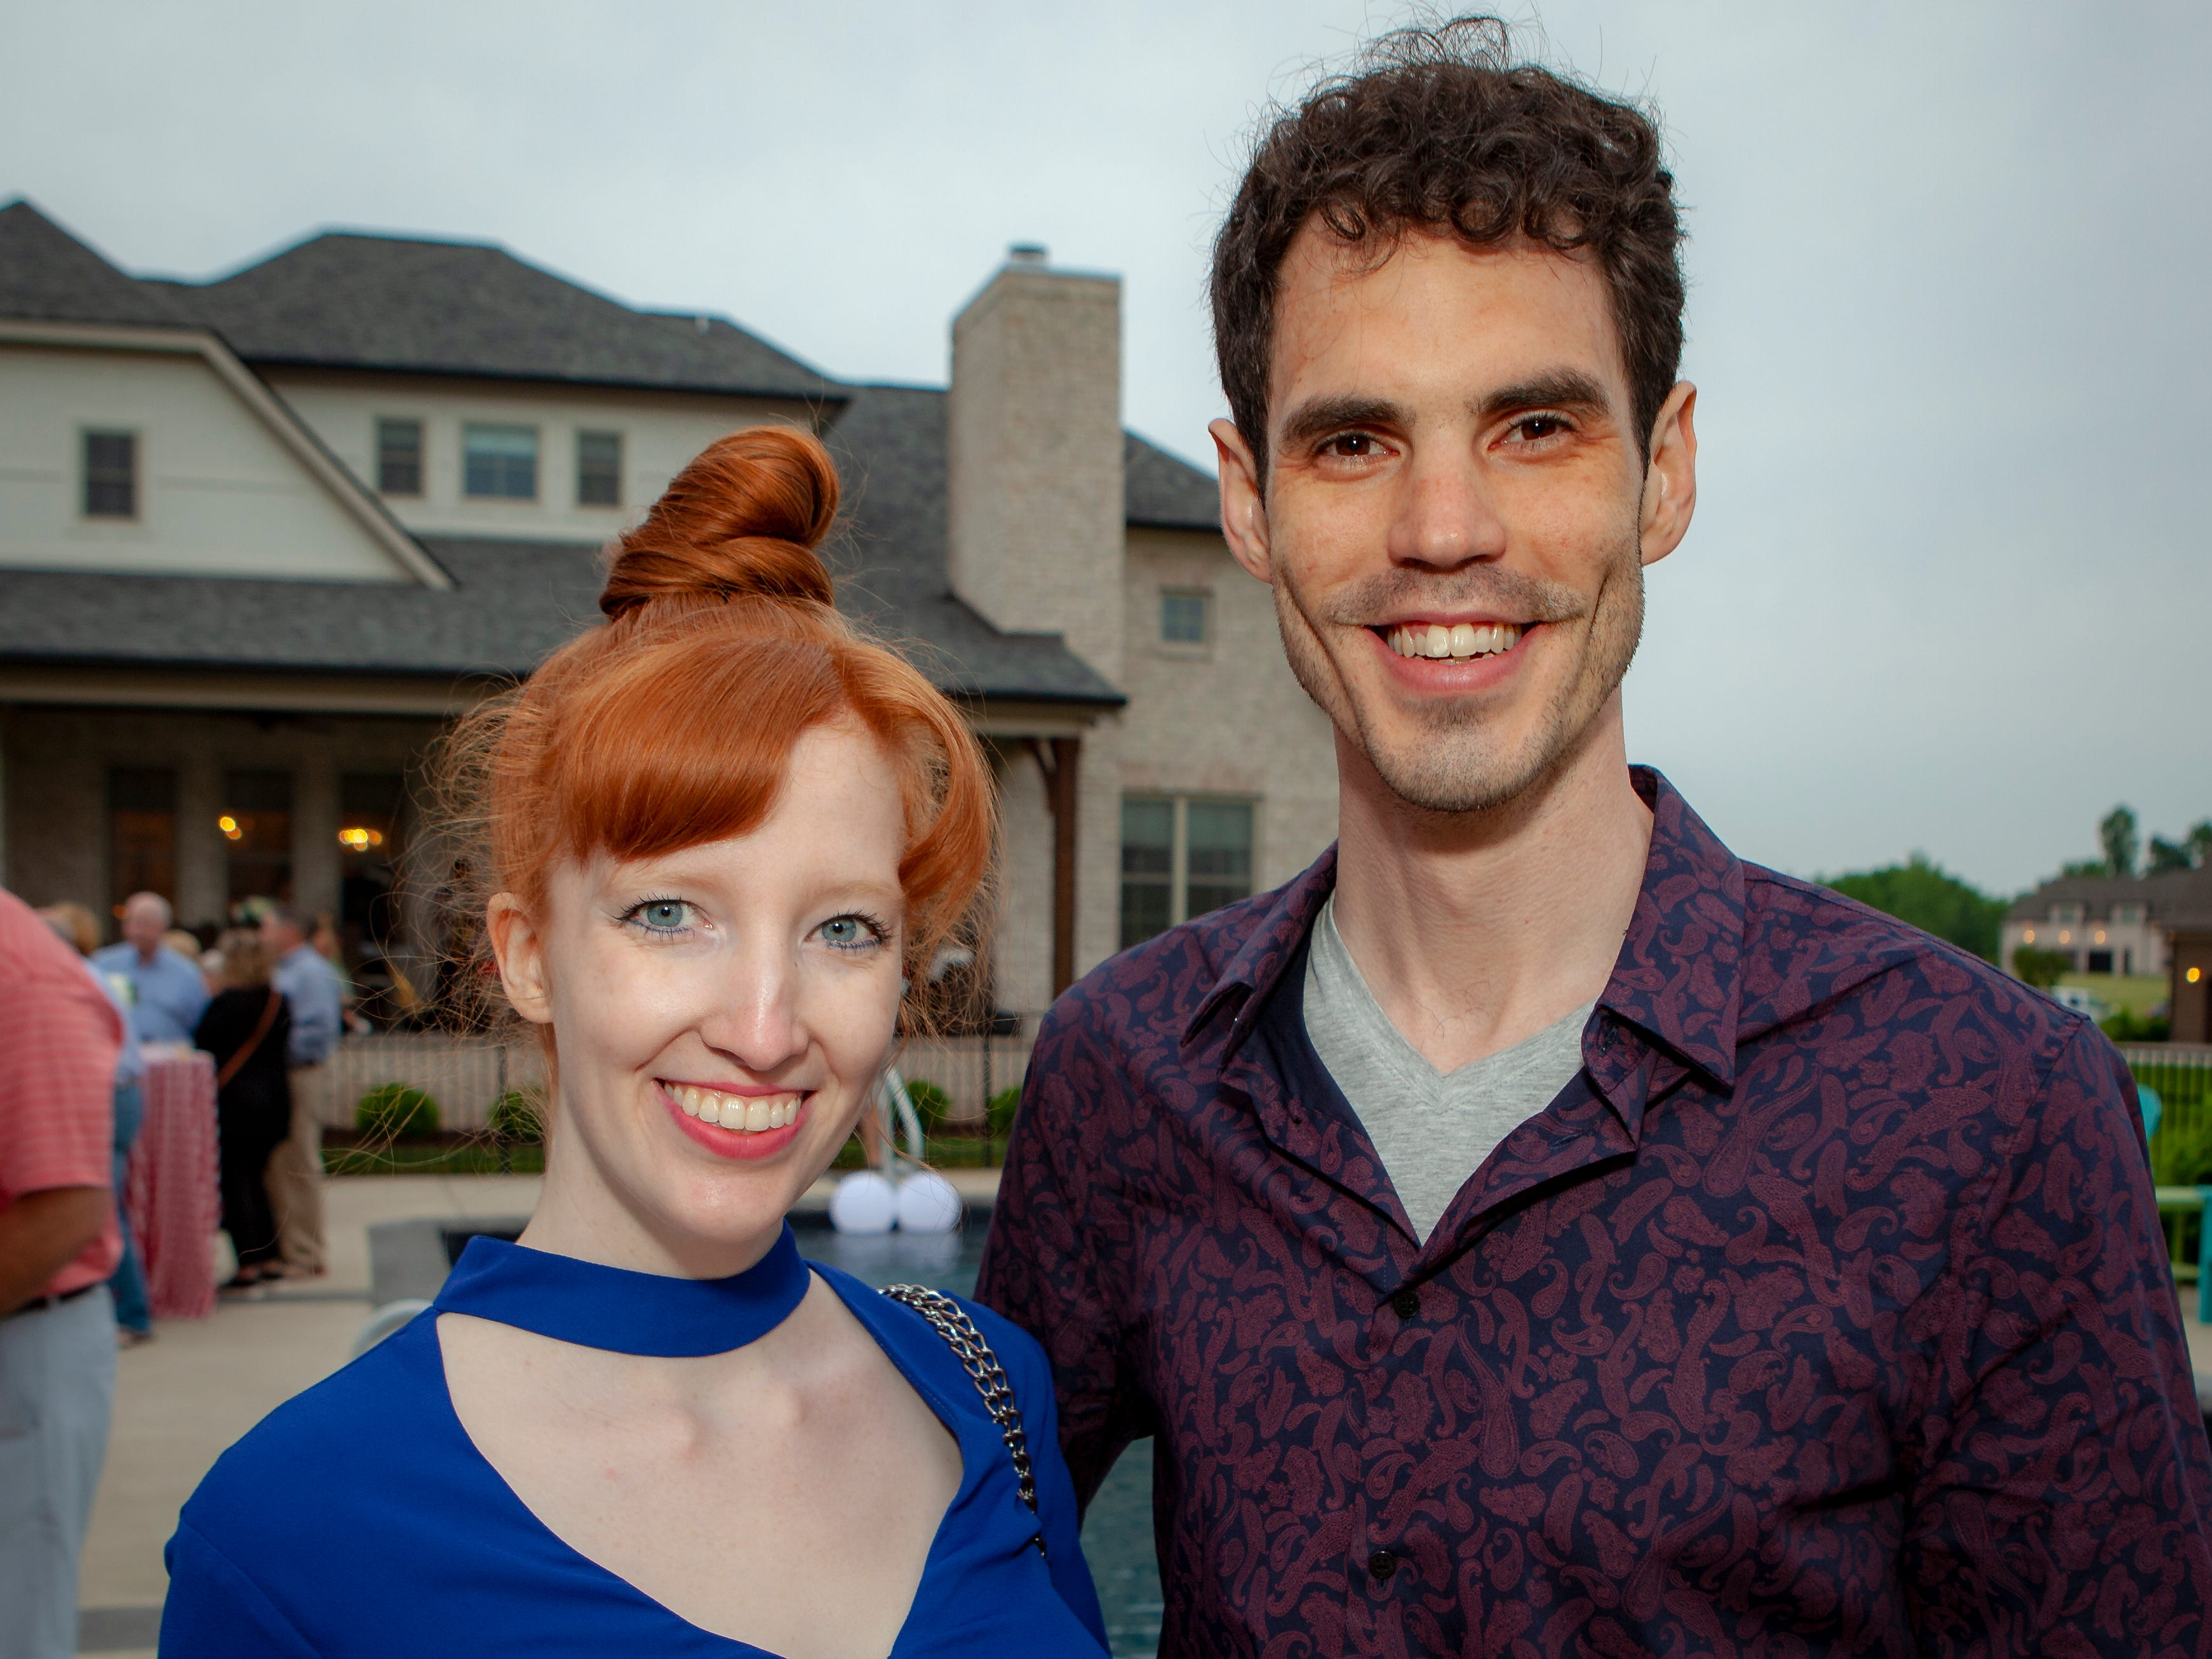 Casey Busch and Joe Canter enjoyed a Cajun feast under the stars at United Way's Red, White and Bayou, held Friday, May 10, 2019 at the home of Jimmy & Nikkole Aho.